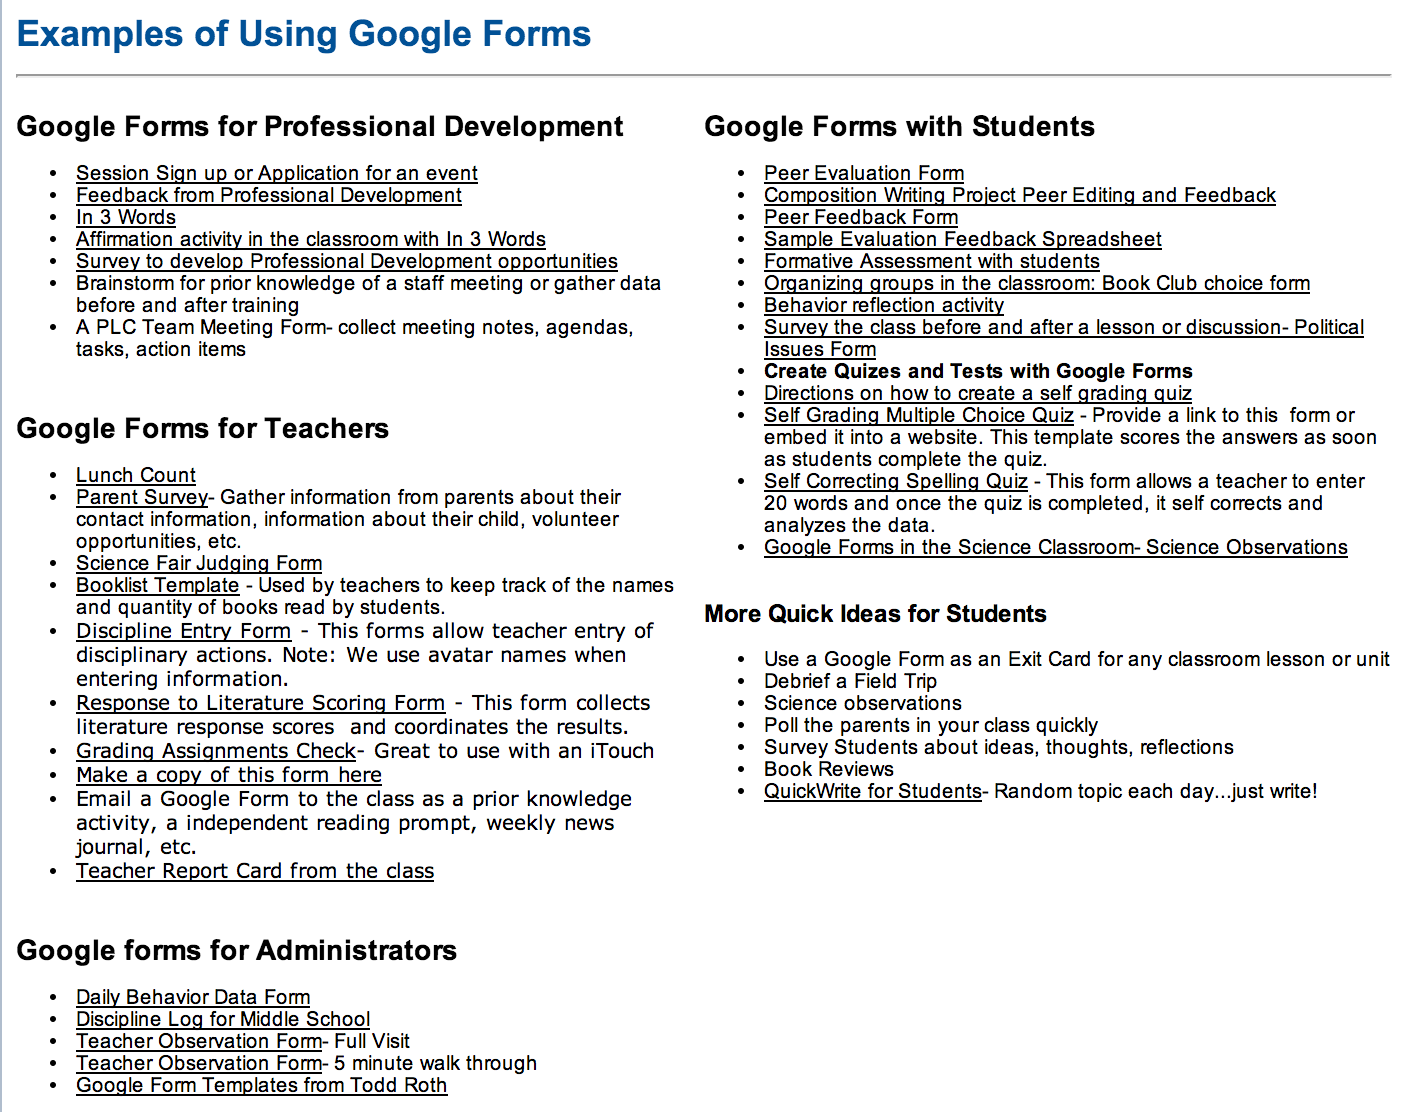 Tons of google forms for teachers administrators and students screenshot from httpssitesgooglesitemydigitalfootprintinnovative ideas for using google forms pronofoot35fo Choice Image